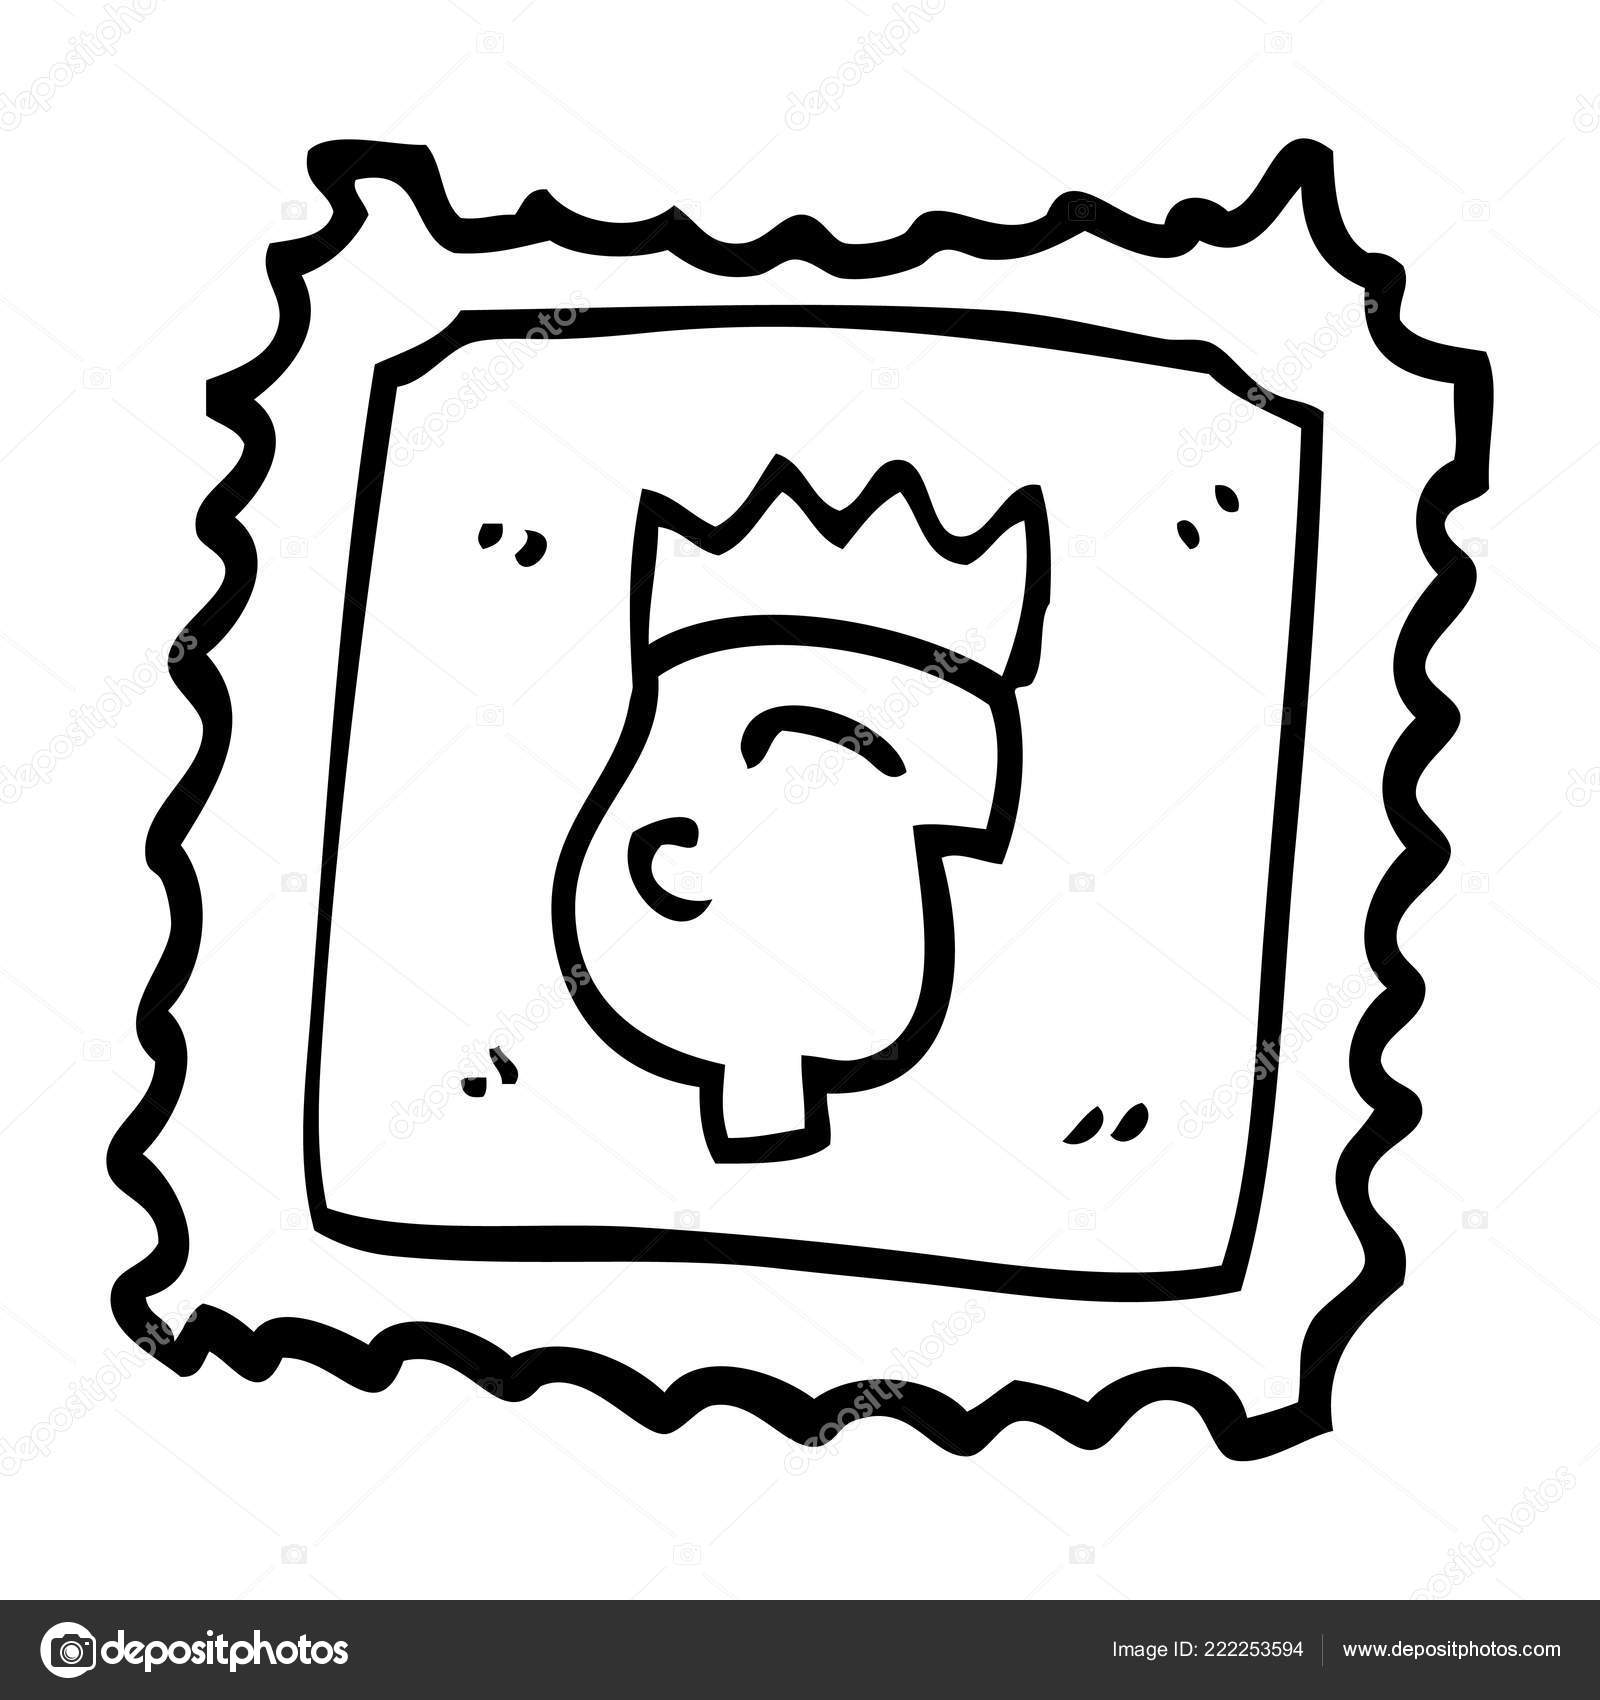 Carton King Stamp Vector Illustration Stock